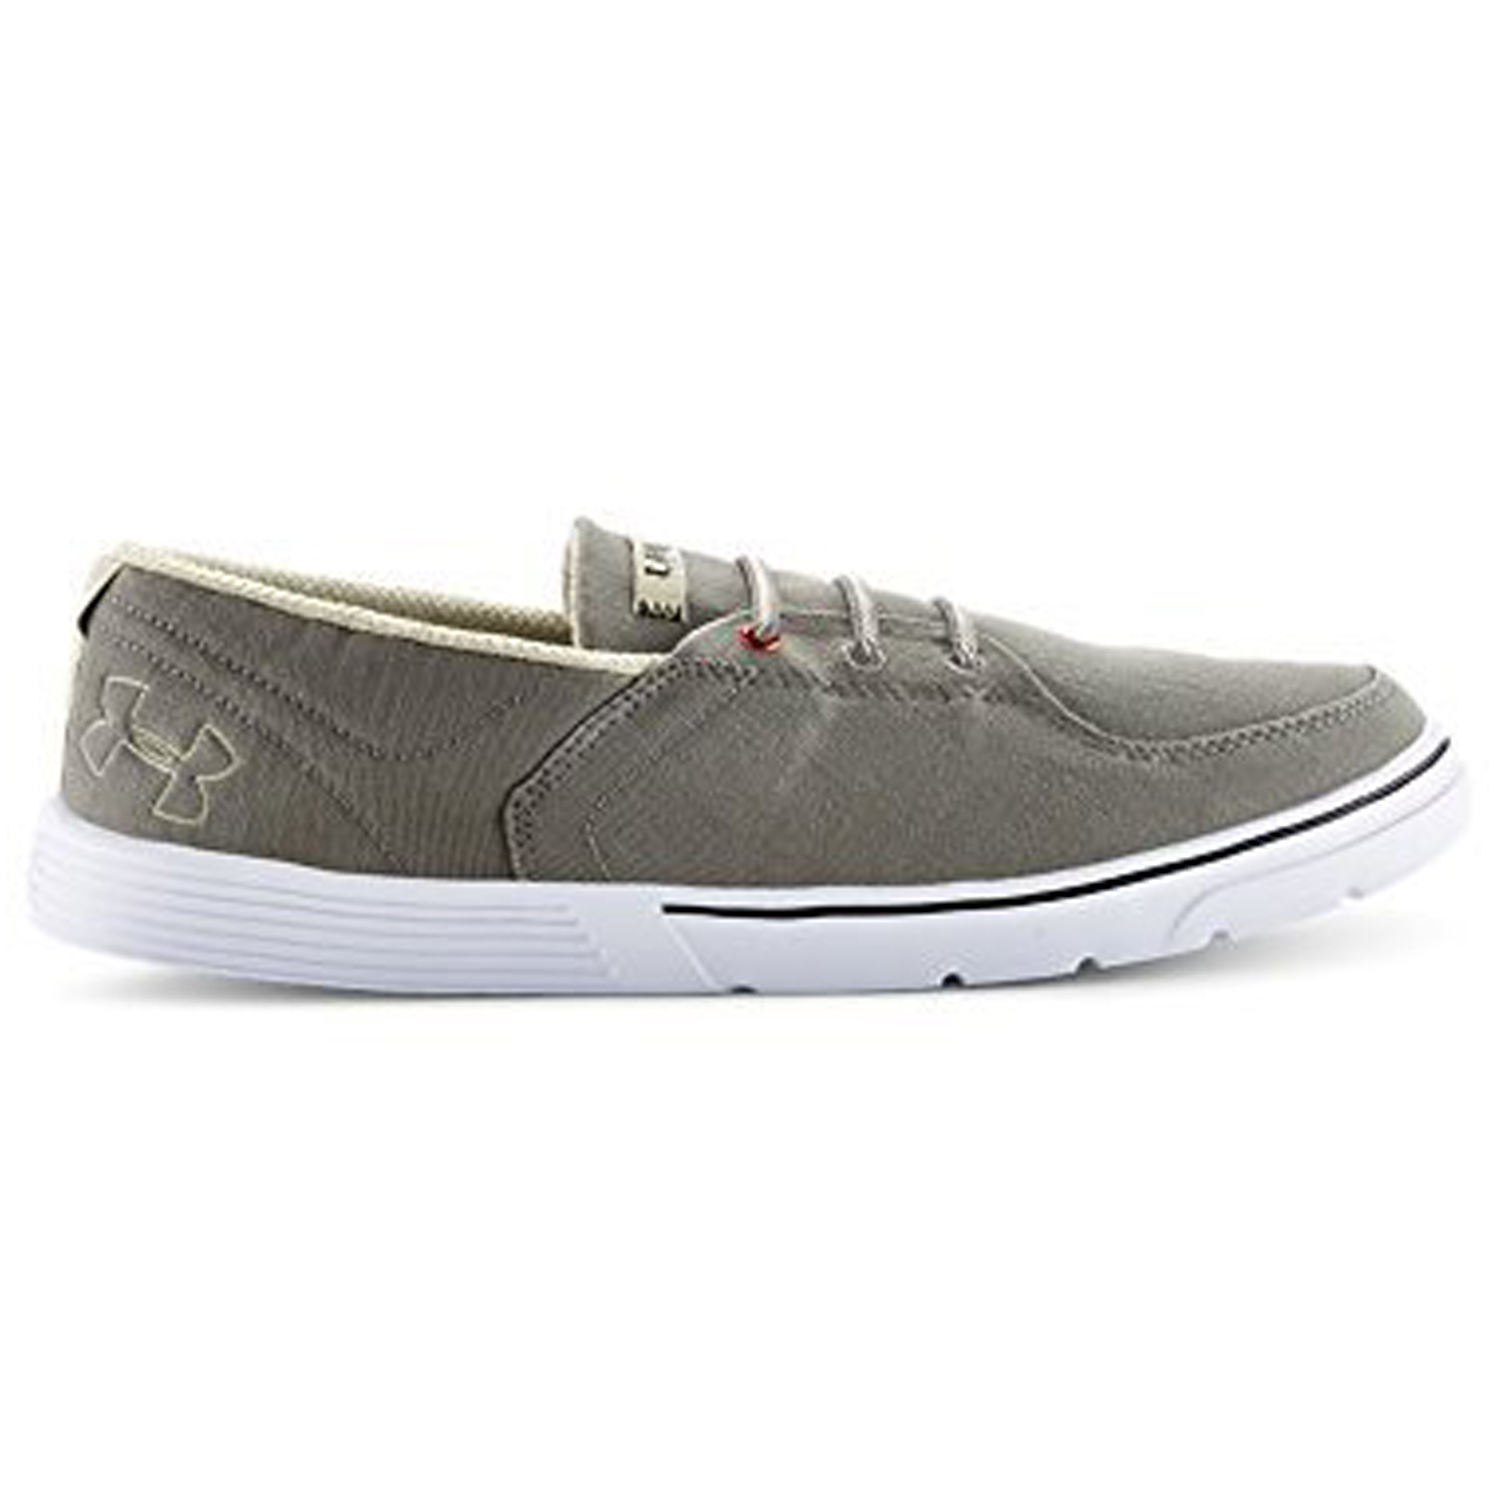 Under Armour Men's Street Encounter Shoes SL Casual Canvas Sneakers Grey 8